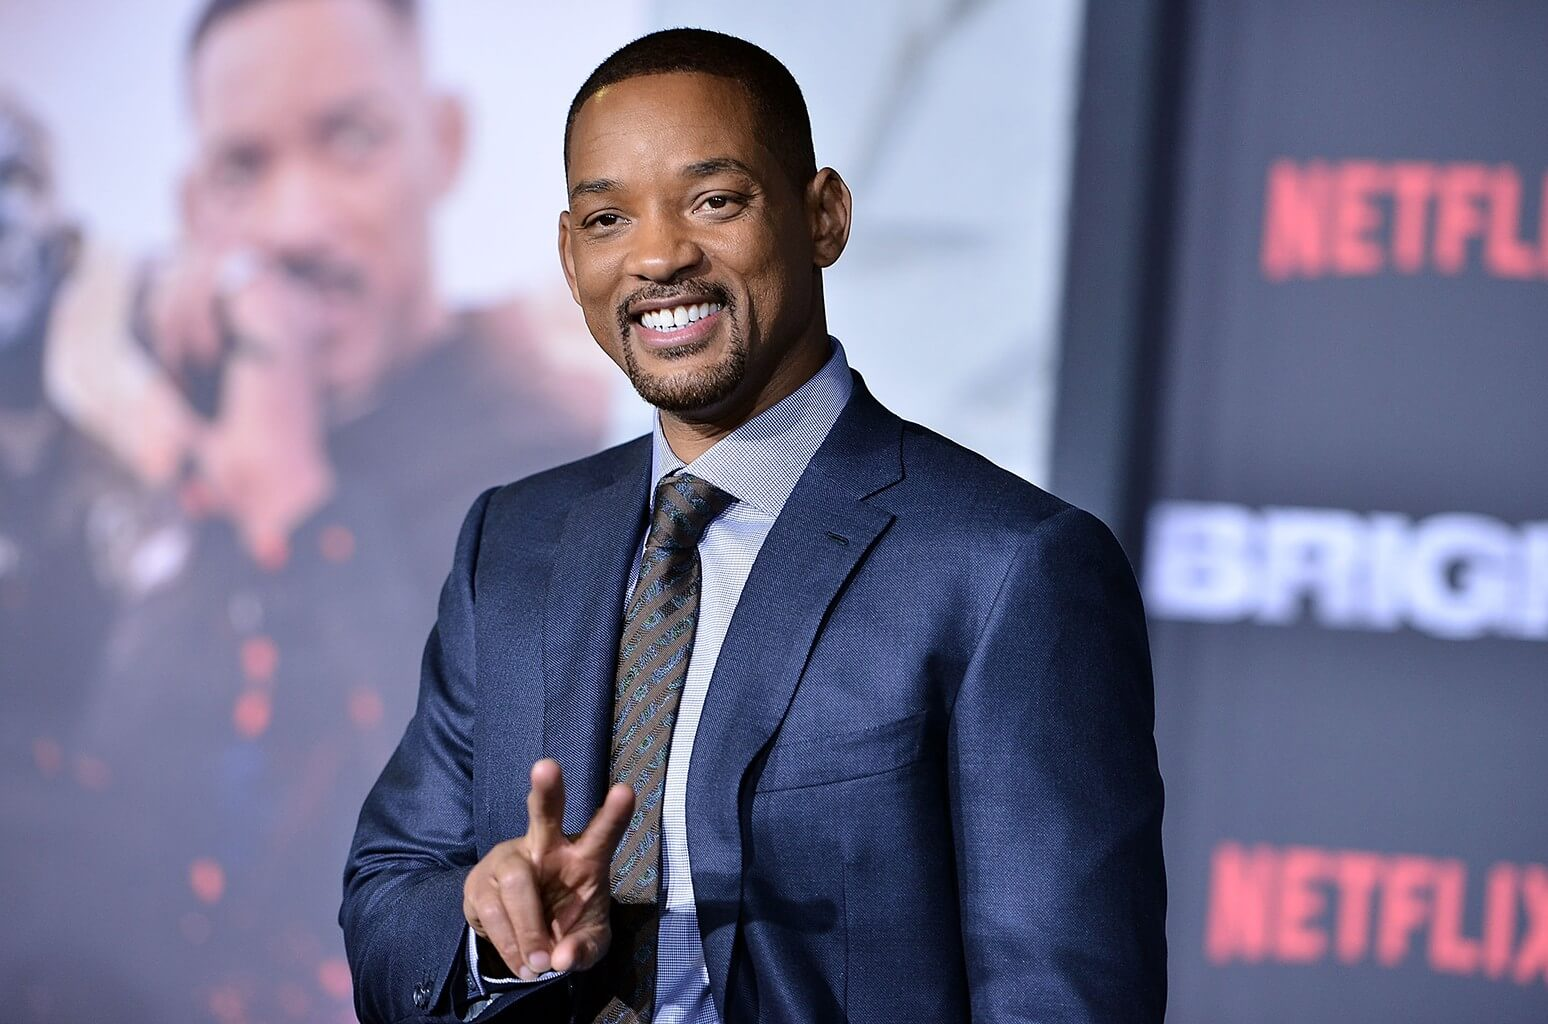 How old is will smith